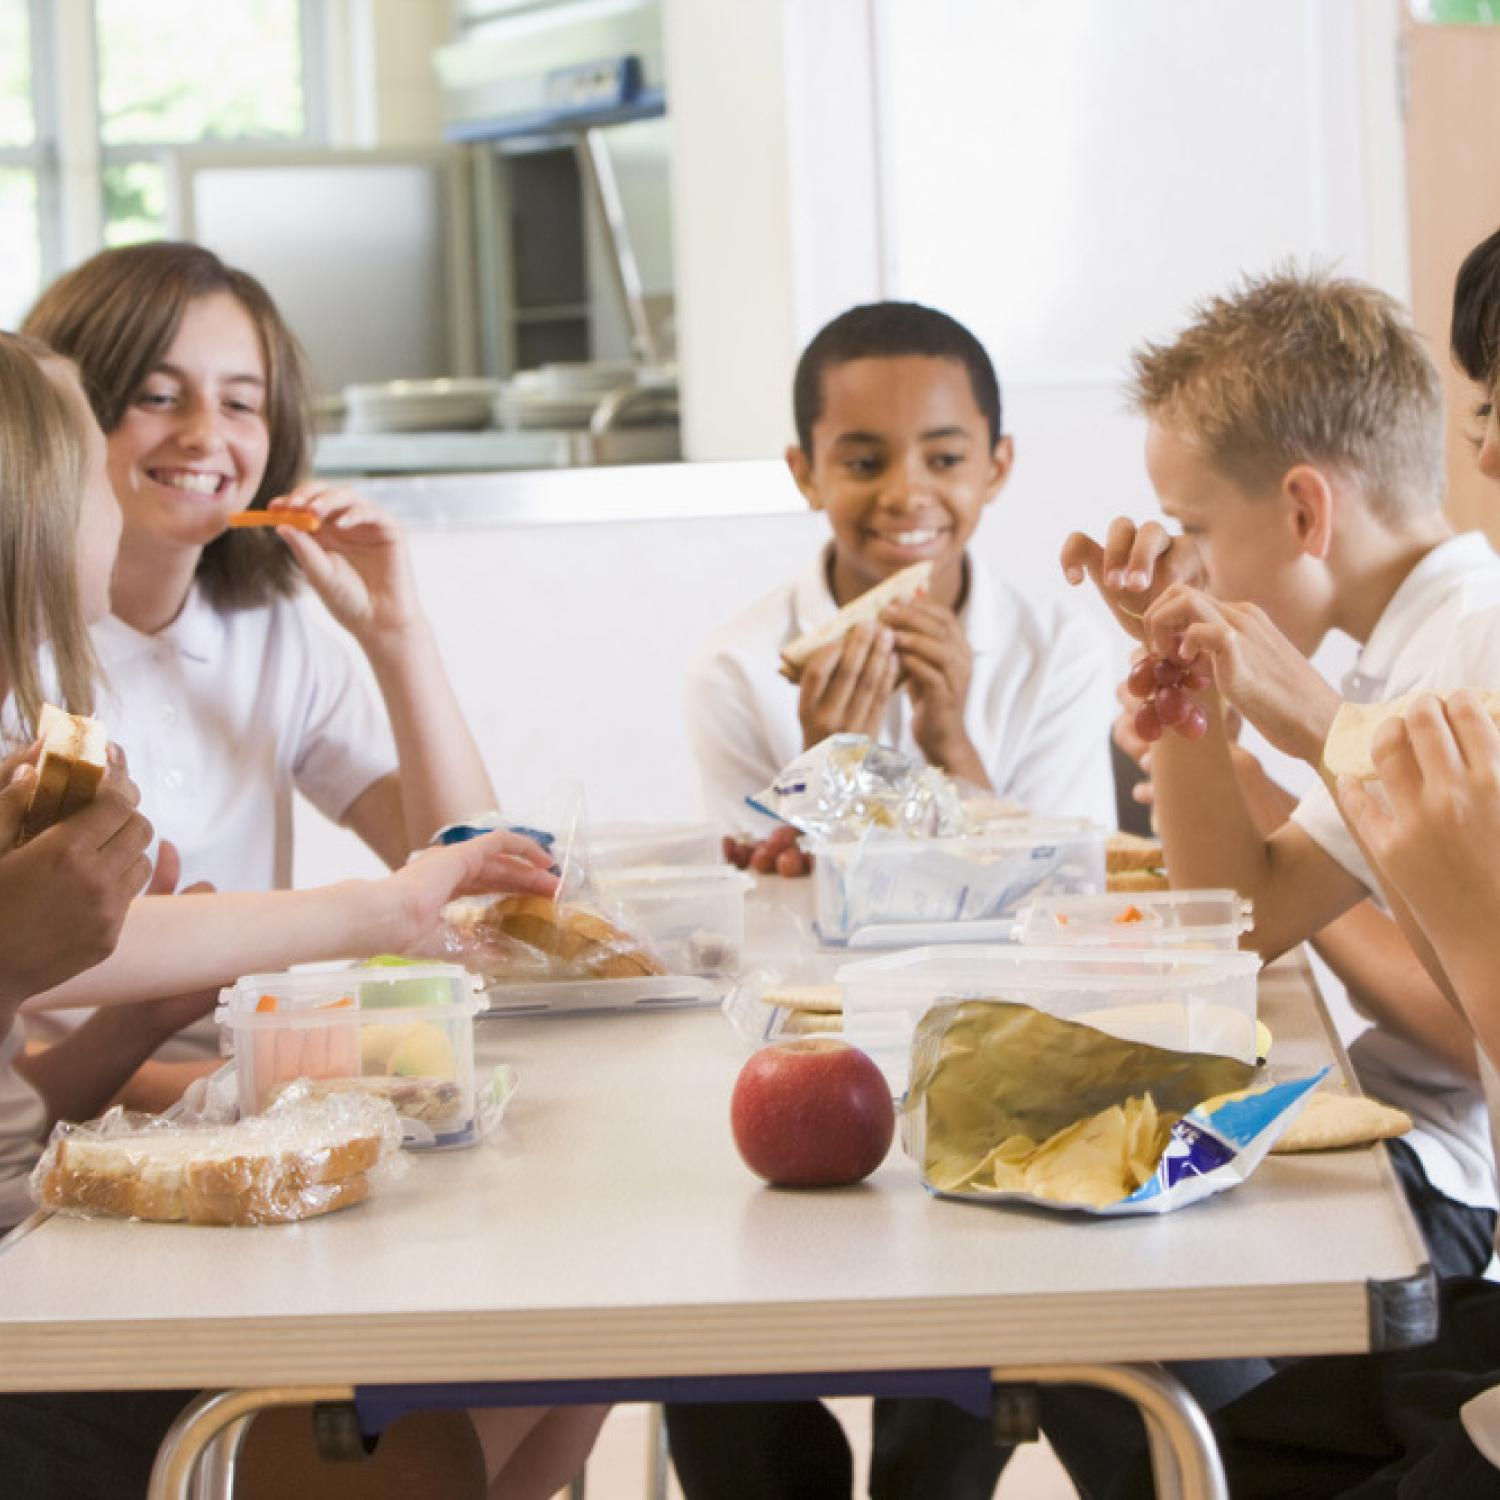 parents fear 'sandwich tax' for kids who bring lunch to